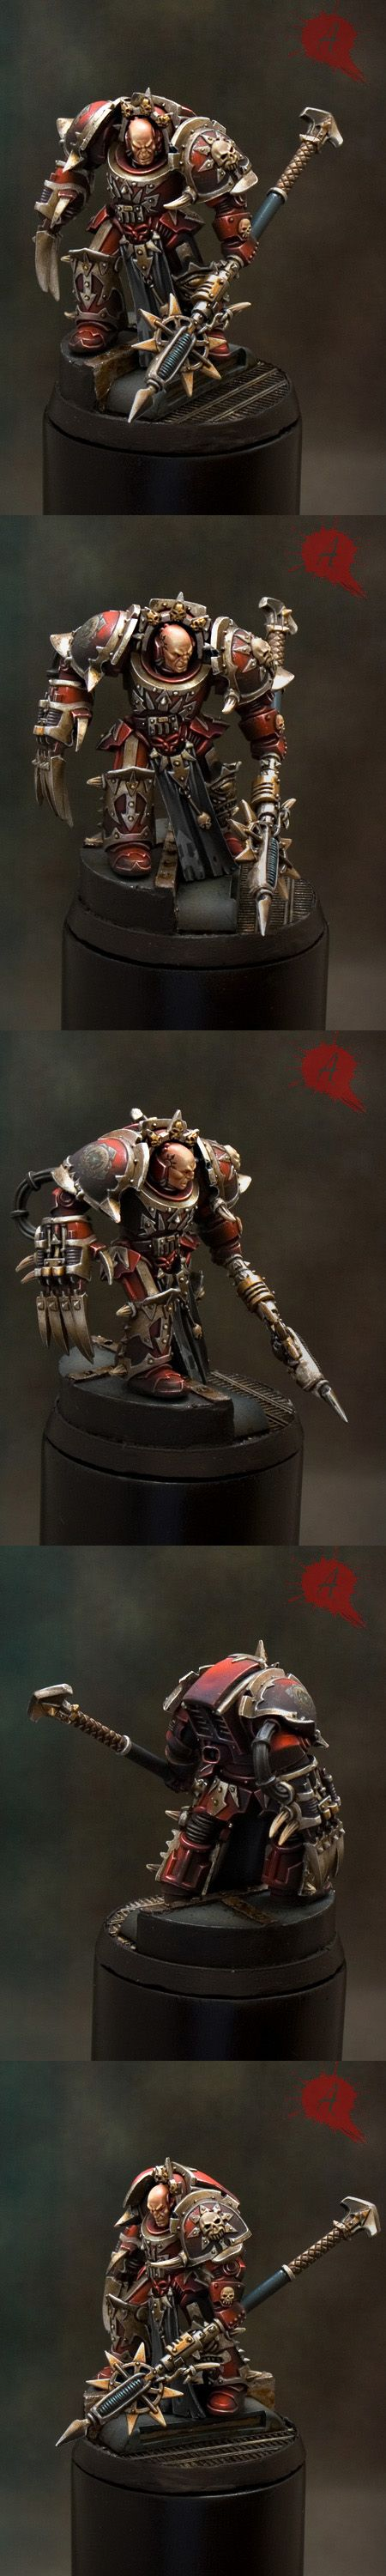 Warhammer 40k Single Miniature Golden Deamon 2011 Winner, Madrid